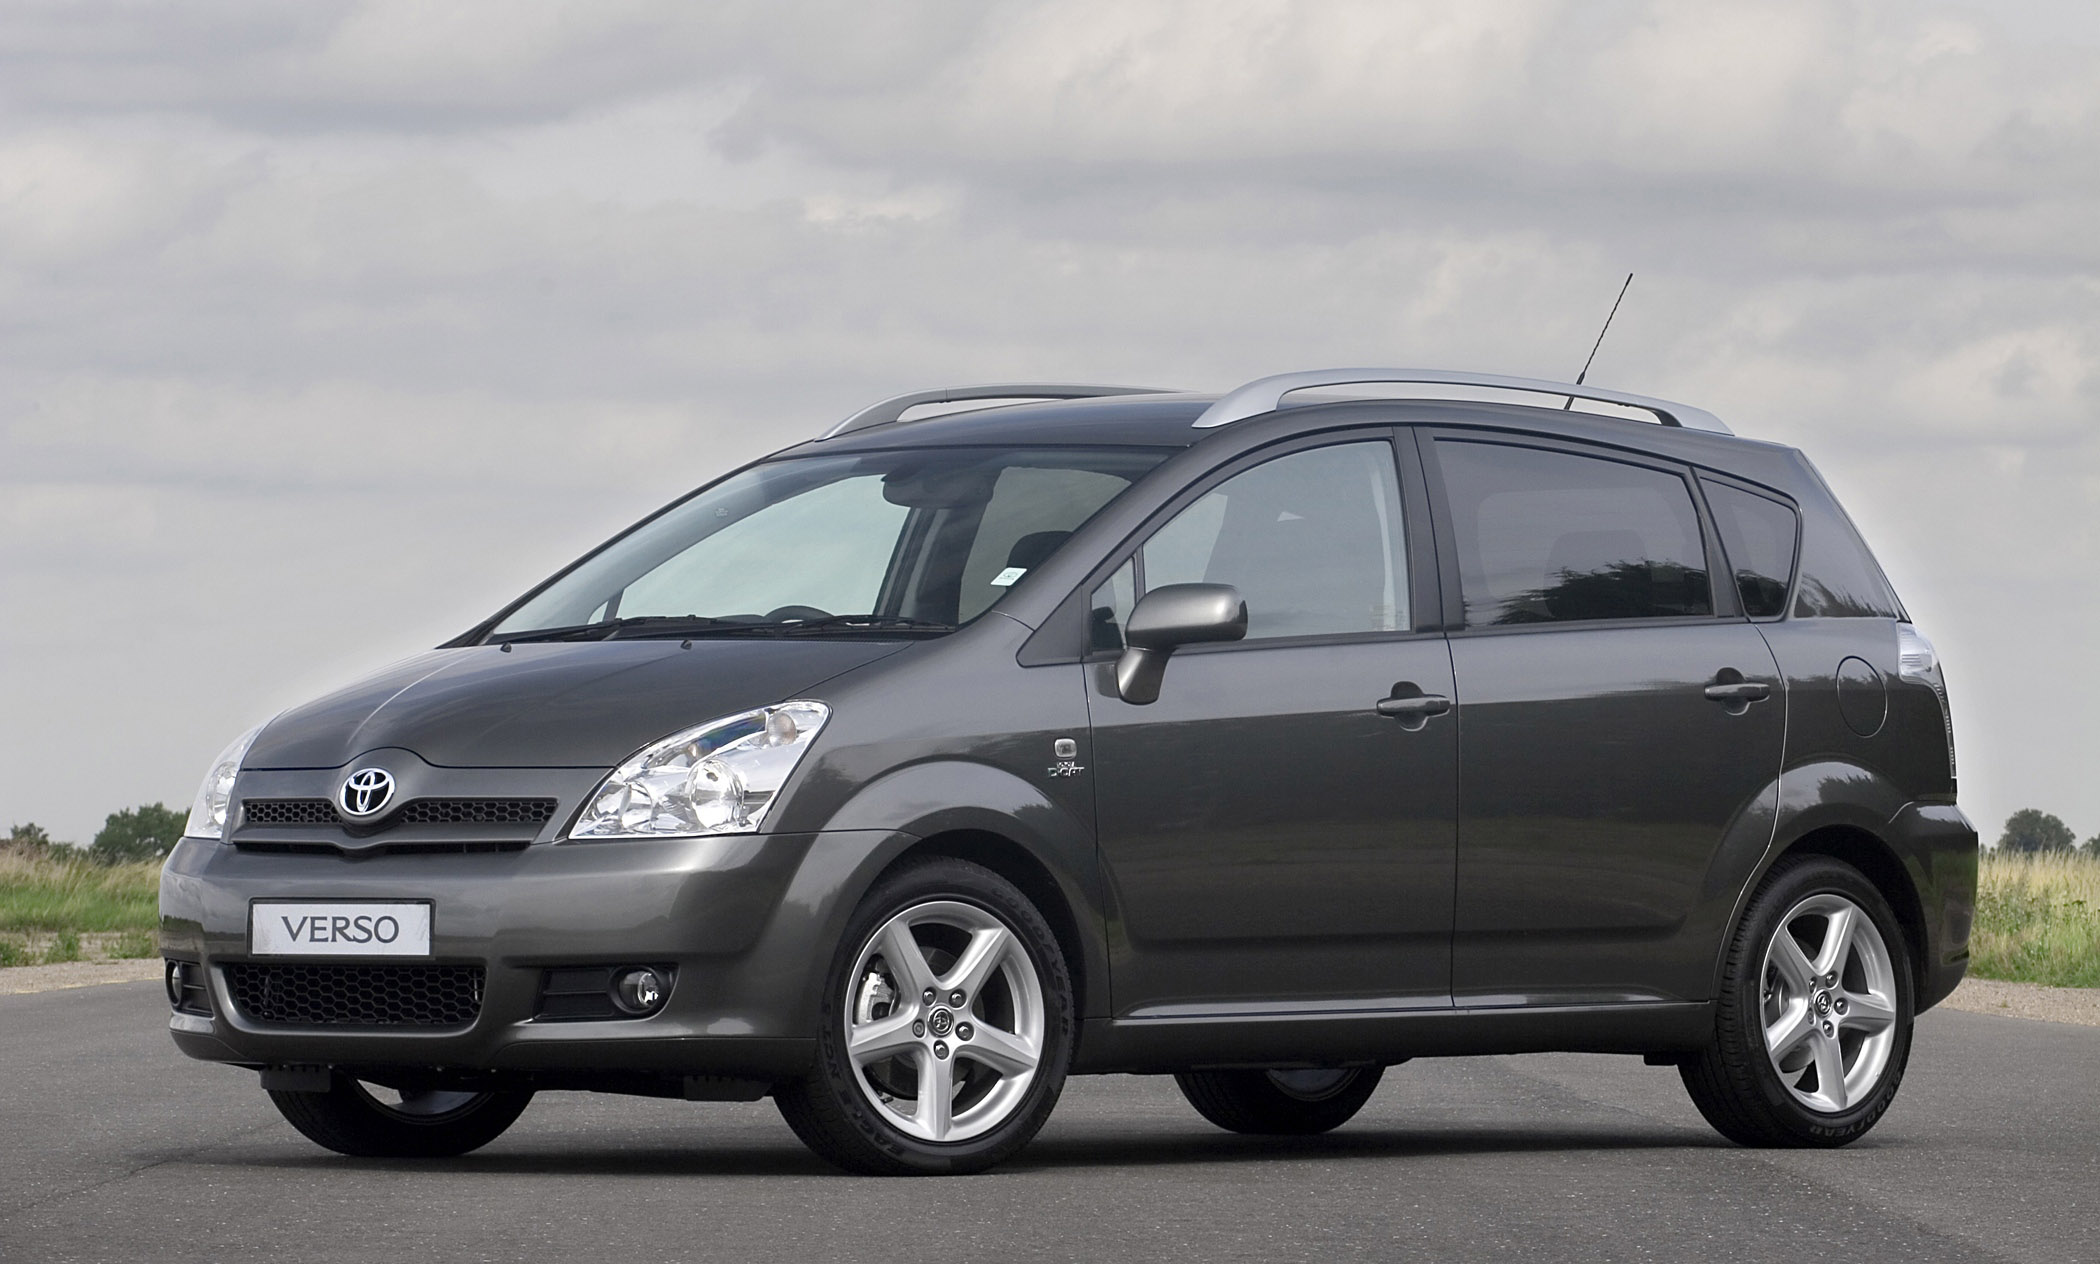 Exclusive Car Wallpapers 2005 Toyota Verso D 4d Picture 77819